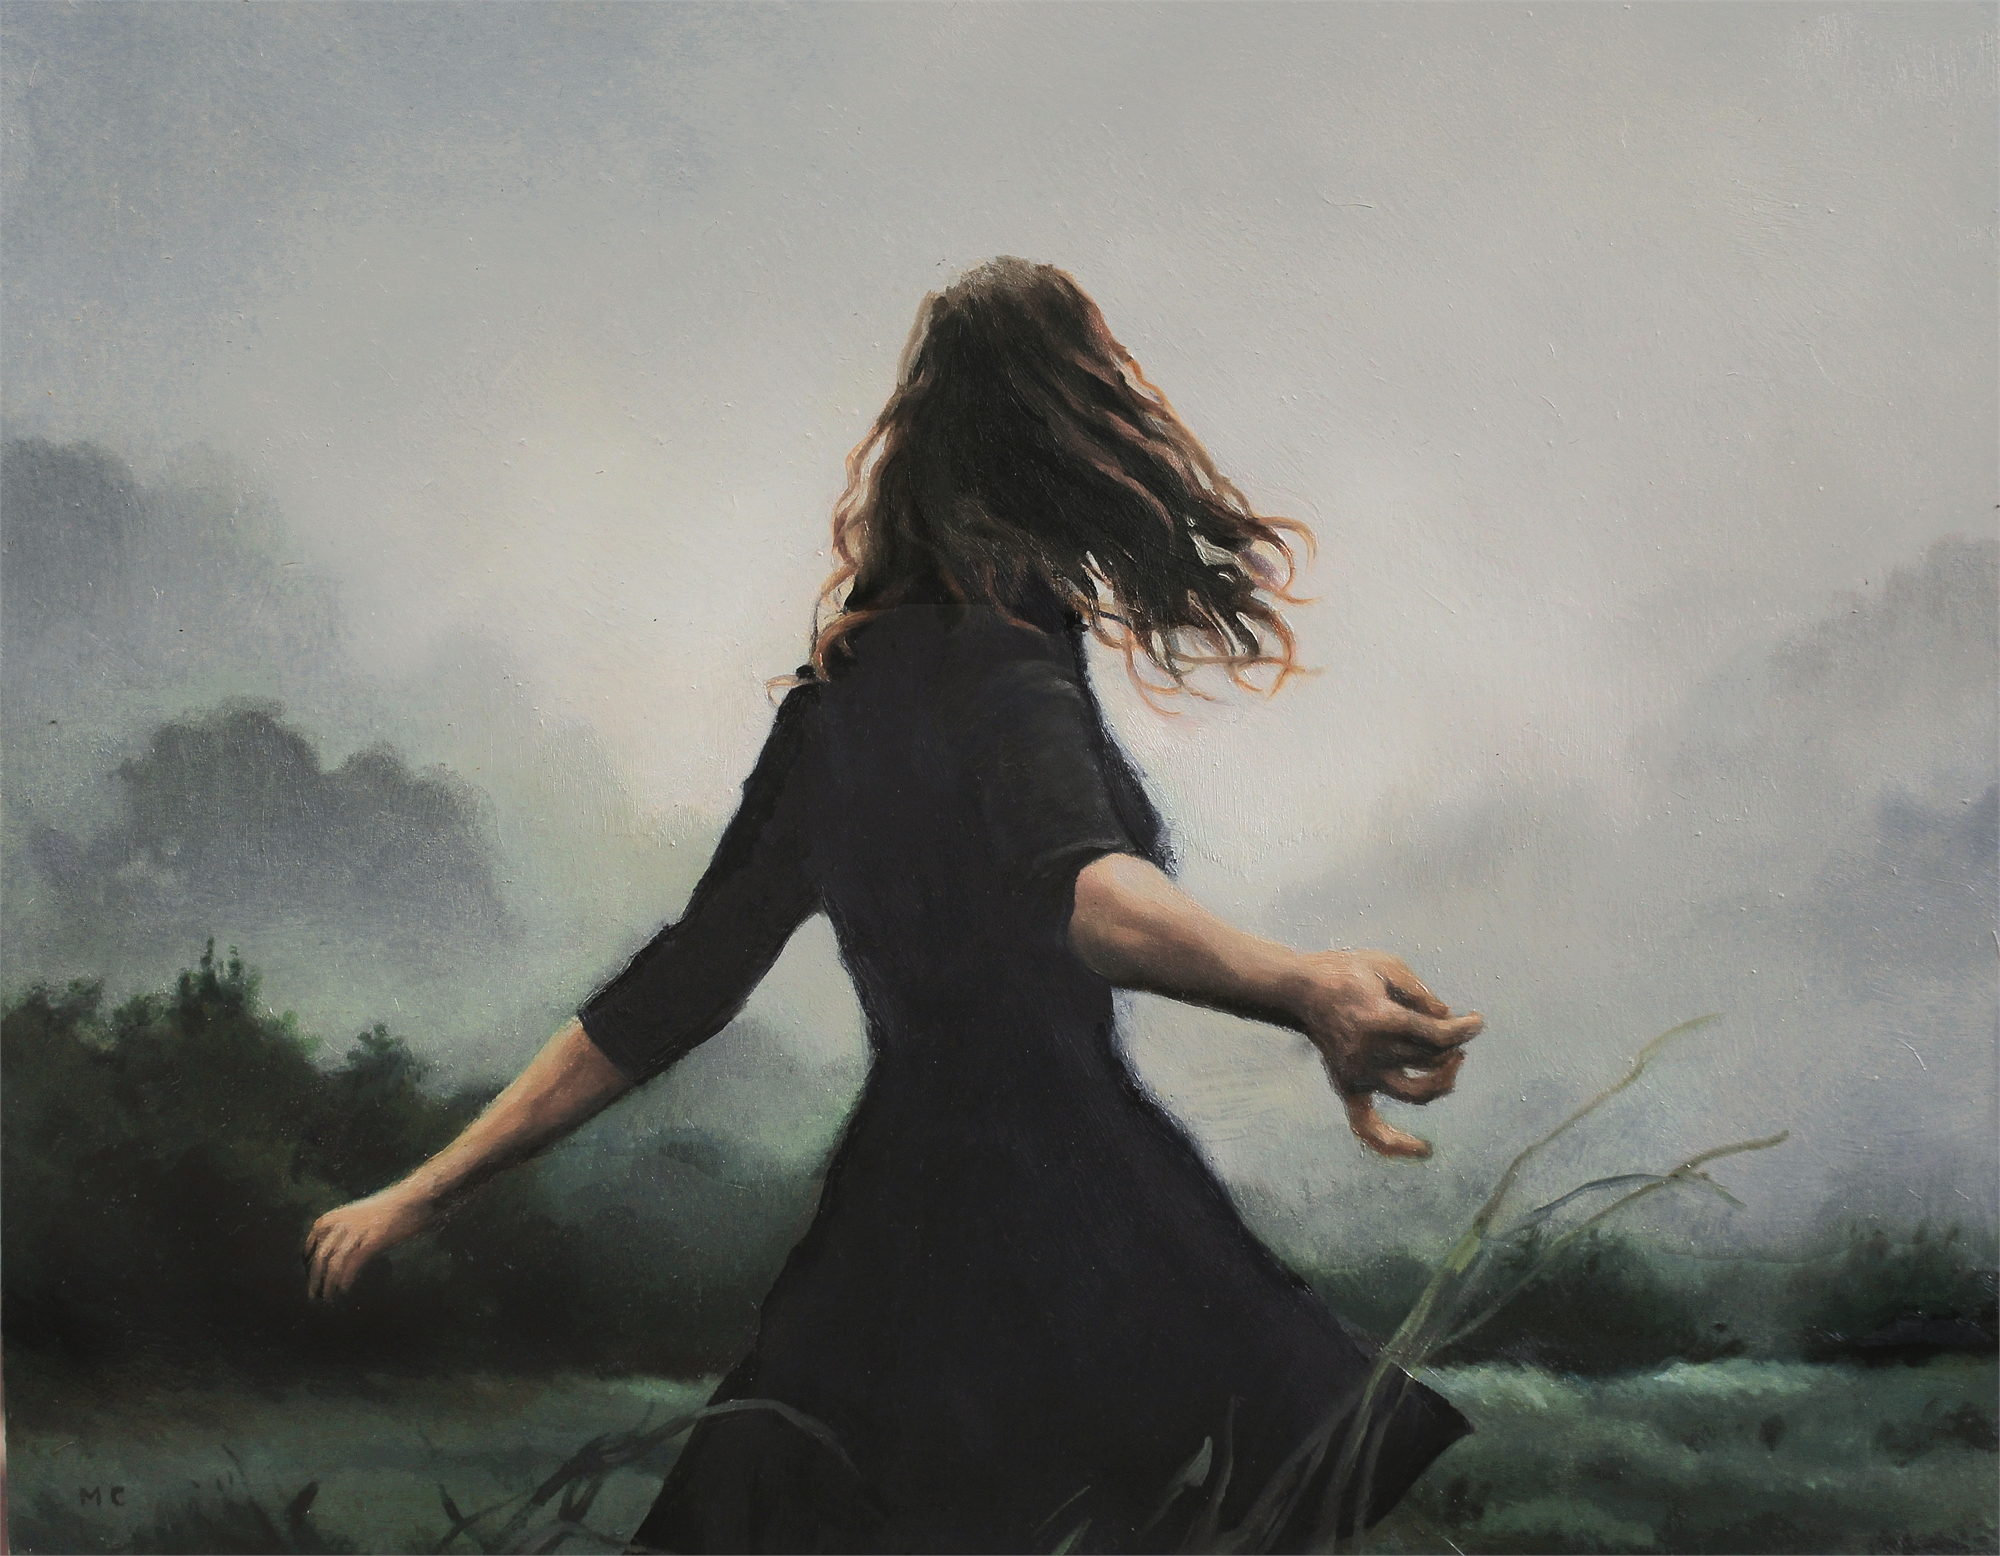 It Sounded Like Thunder by Mary Chiaramonte